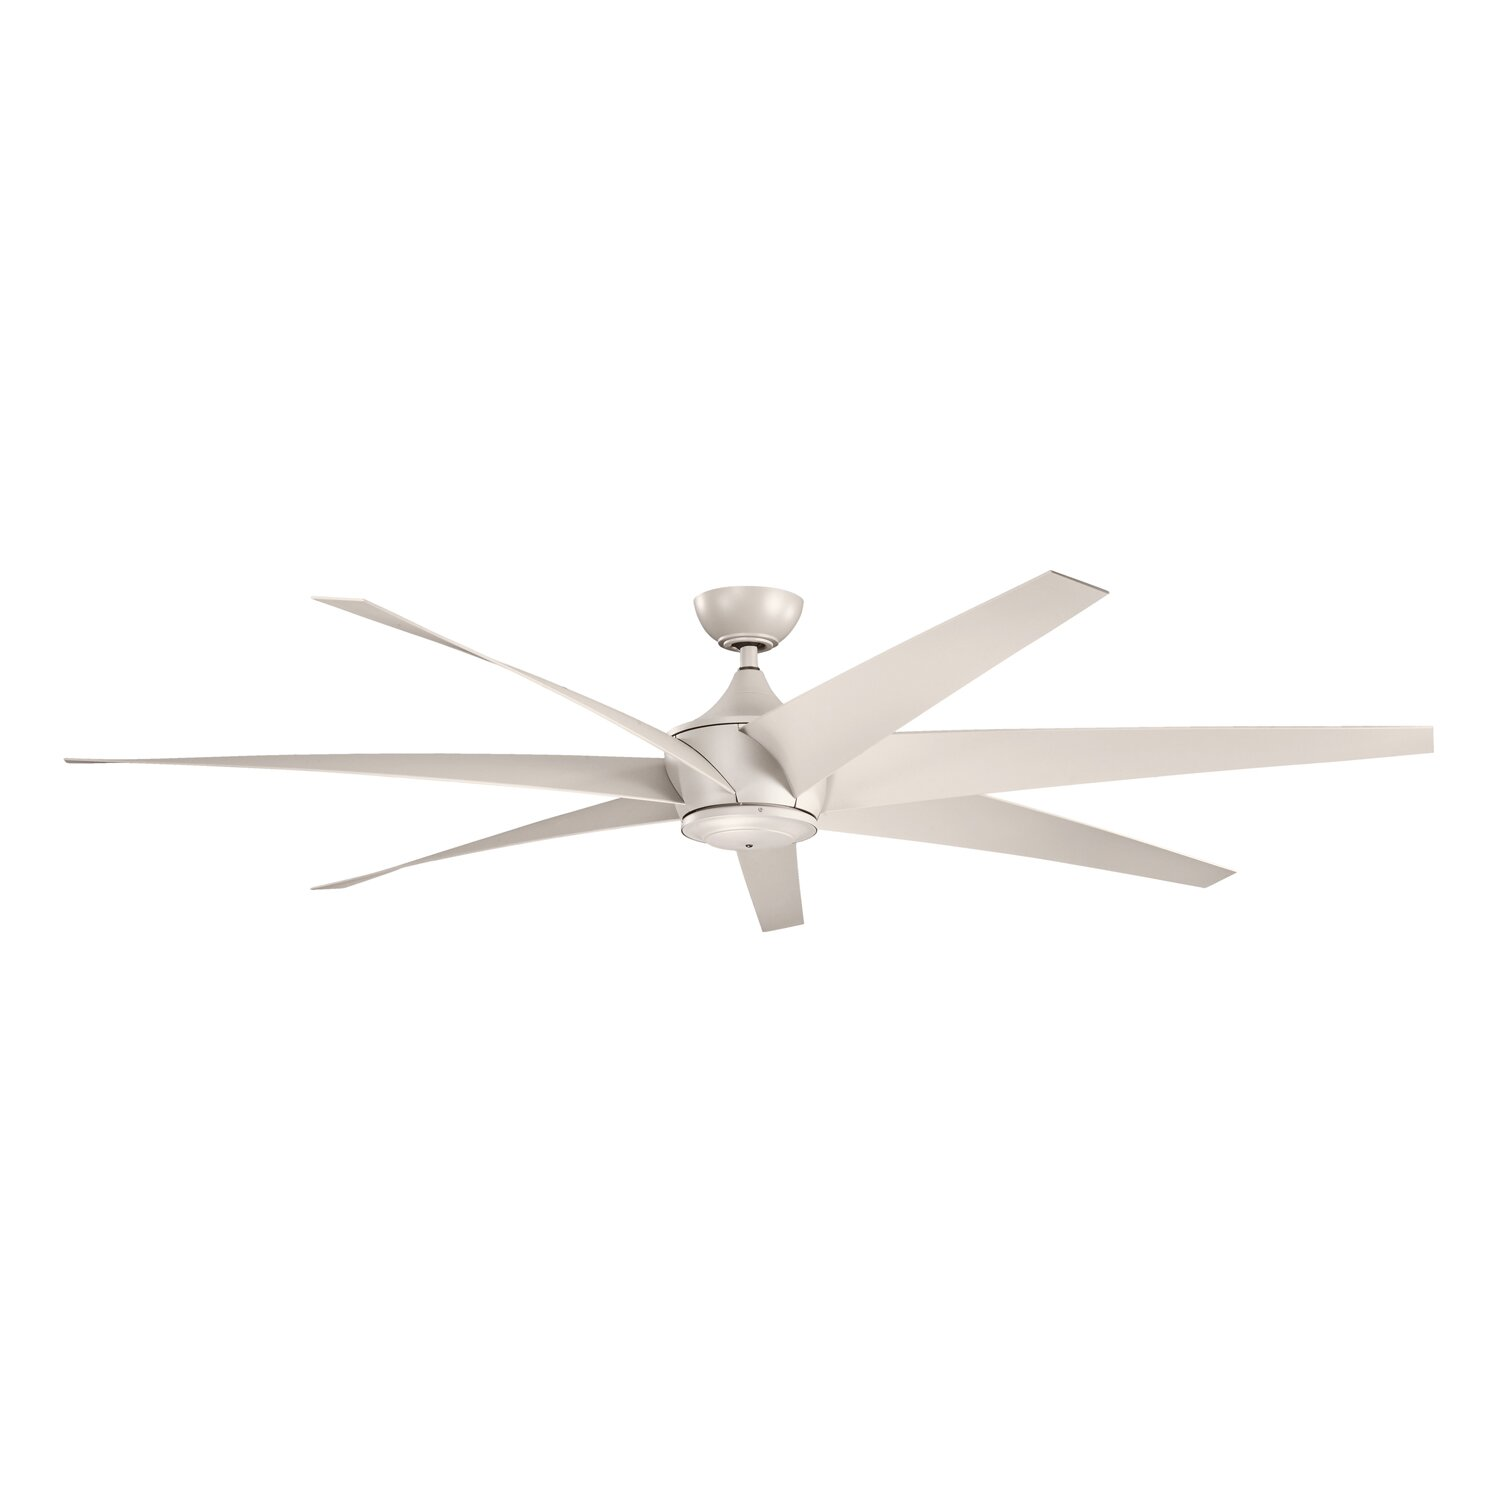 "7 Blade Ceiling Fan: Kichler 80"" Lehr 7 Blade Ceiling Fan,Lighting"